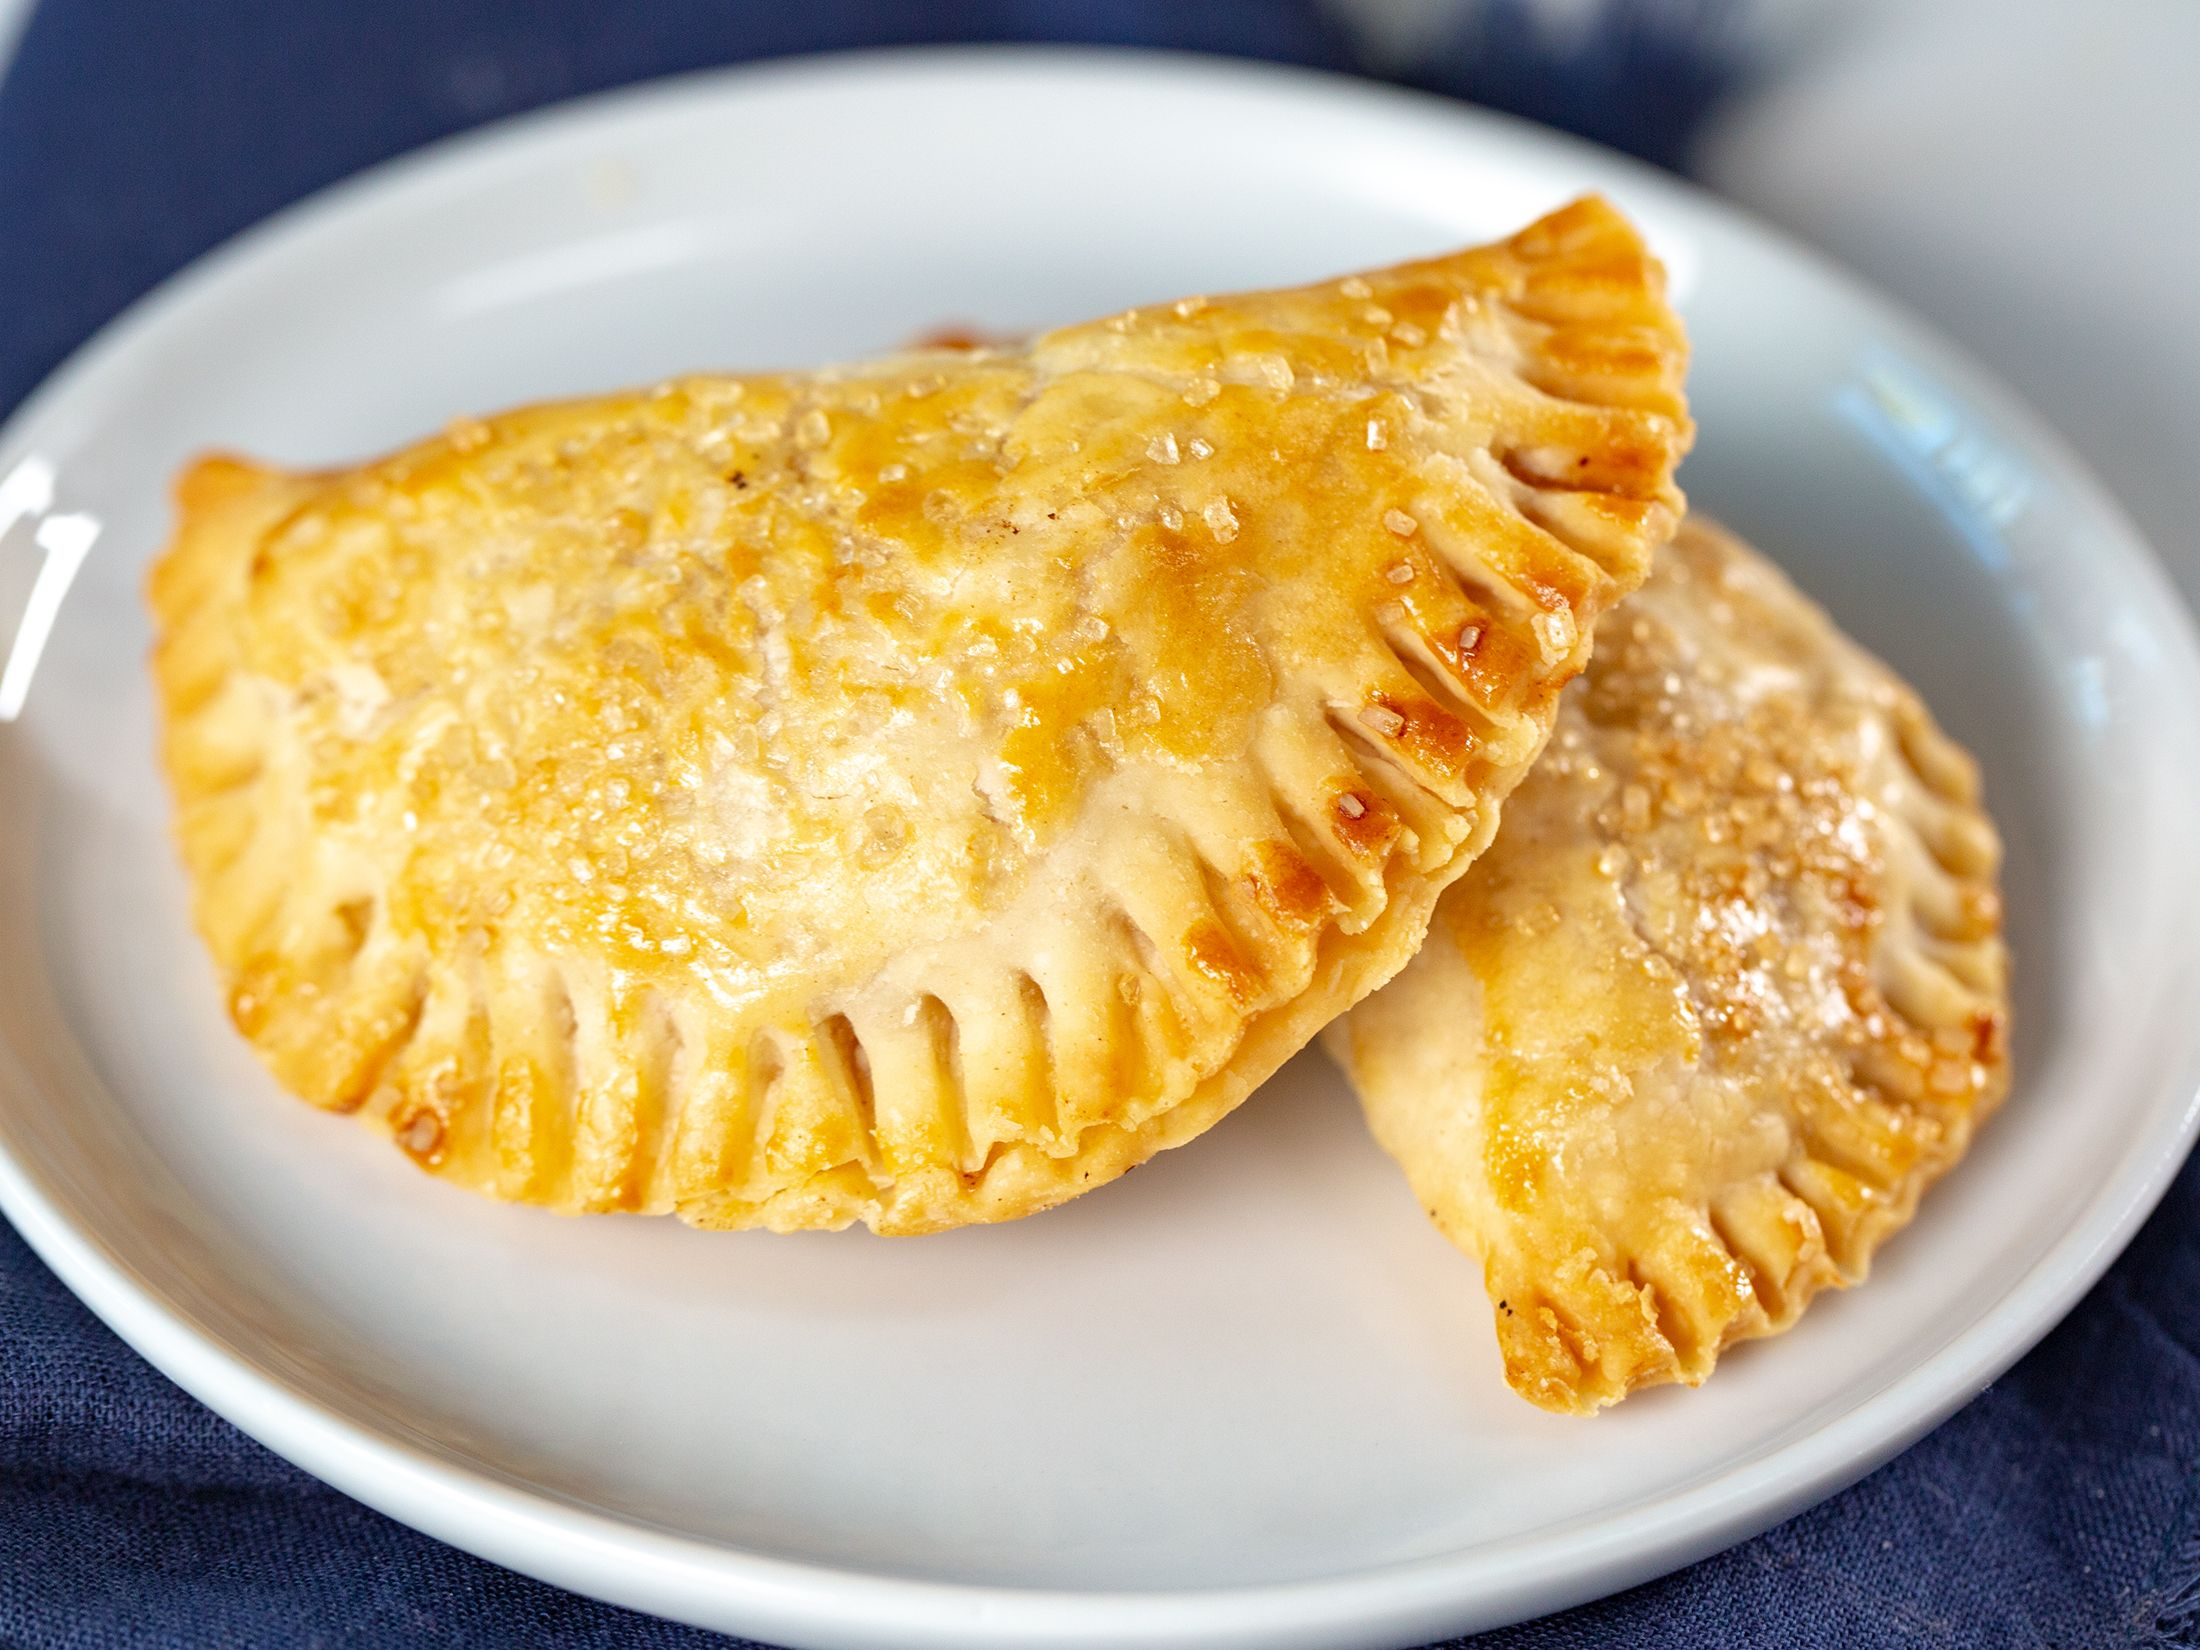 AirFried Apple Pies Recipe (With images) Air fryer